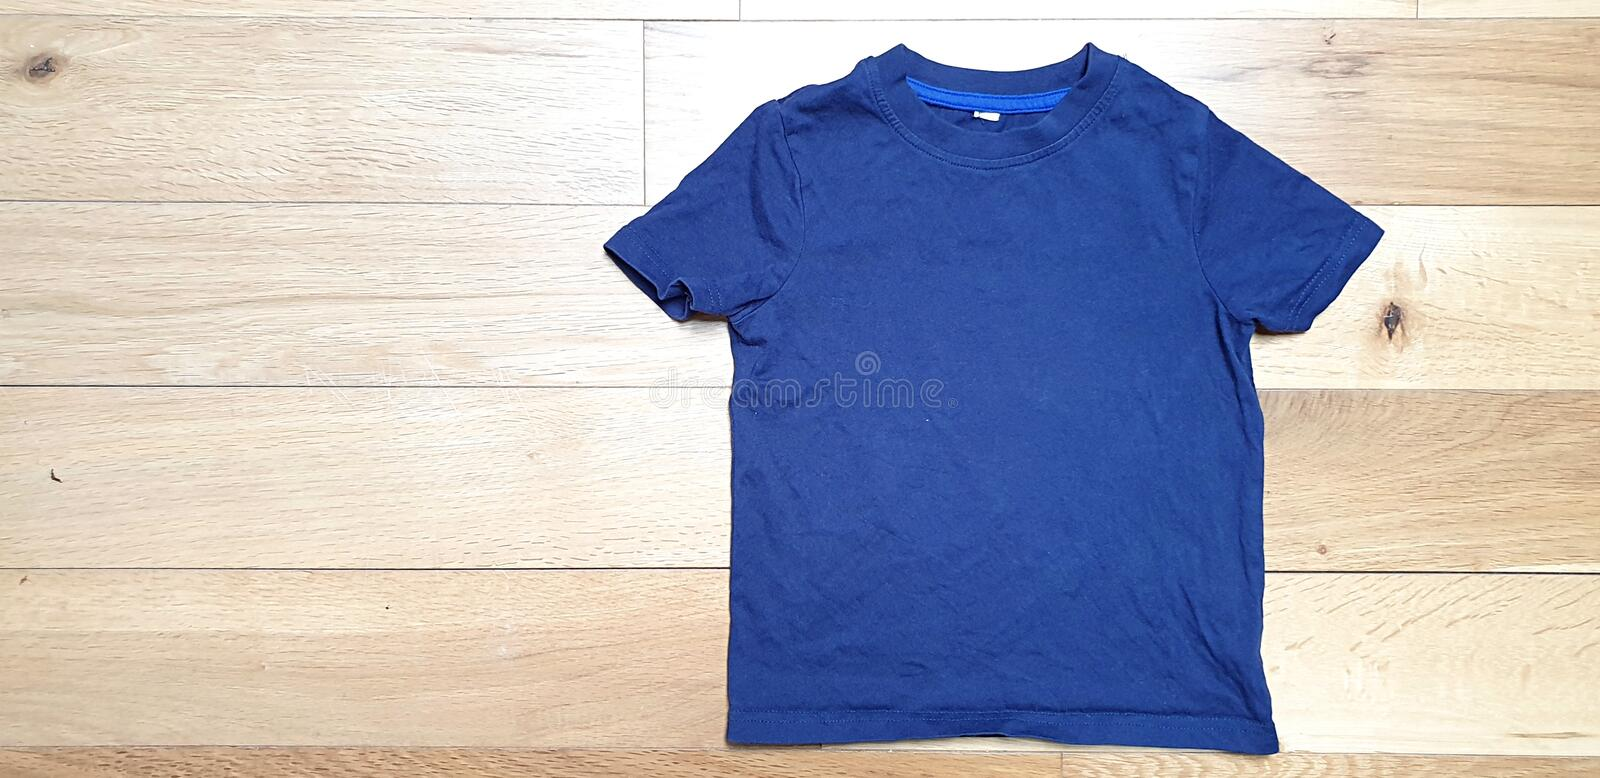 Styled Stock Photography, Mockup-Digital File, Blue toddler T-shirt Mock Up on light Wooded background. royalty free stock photography